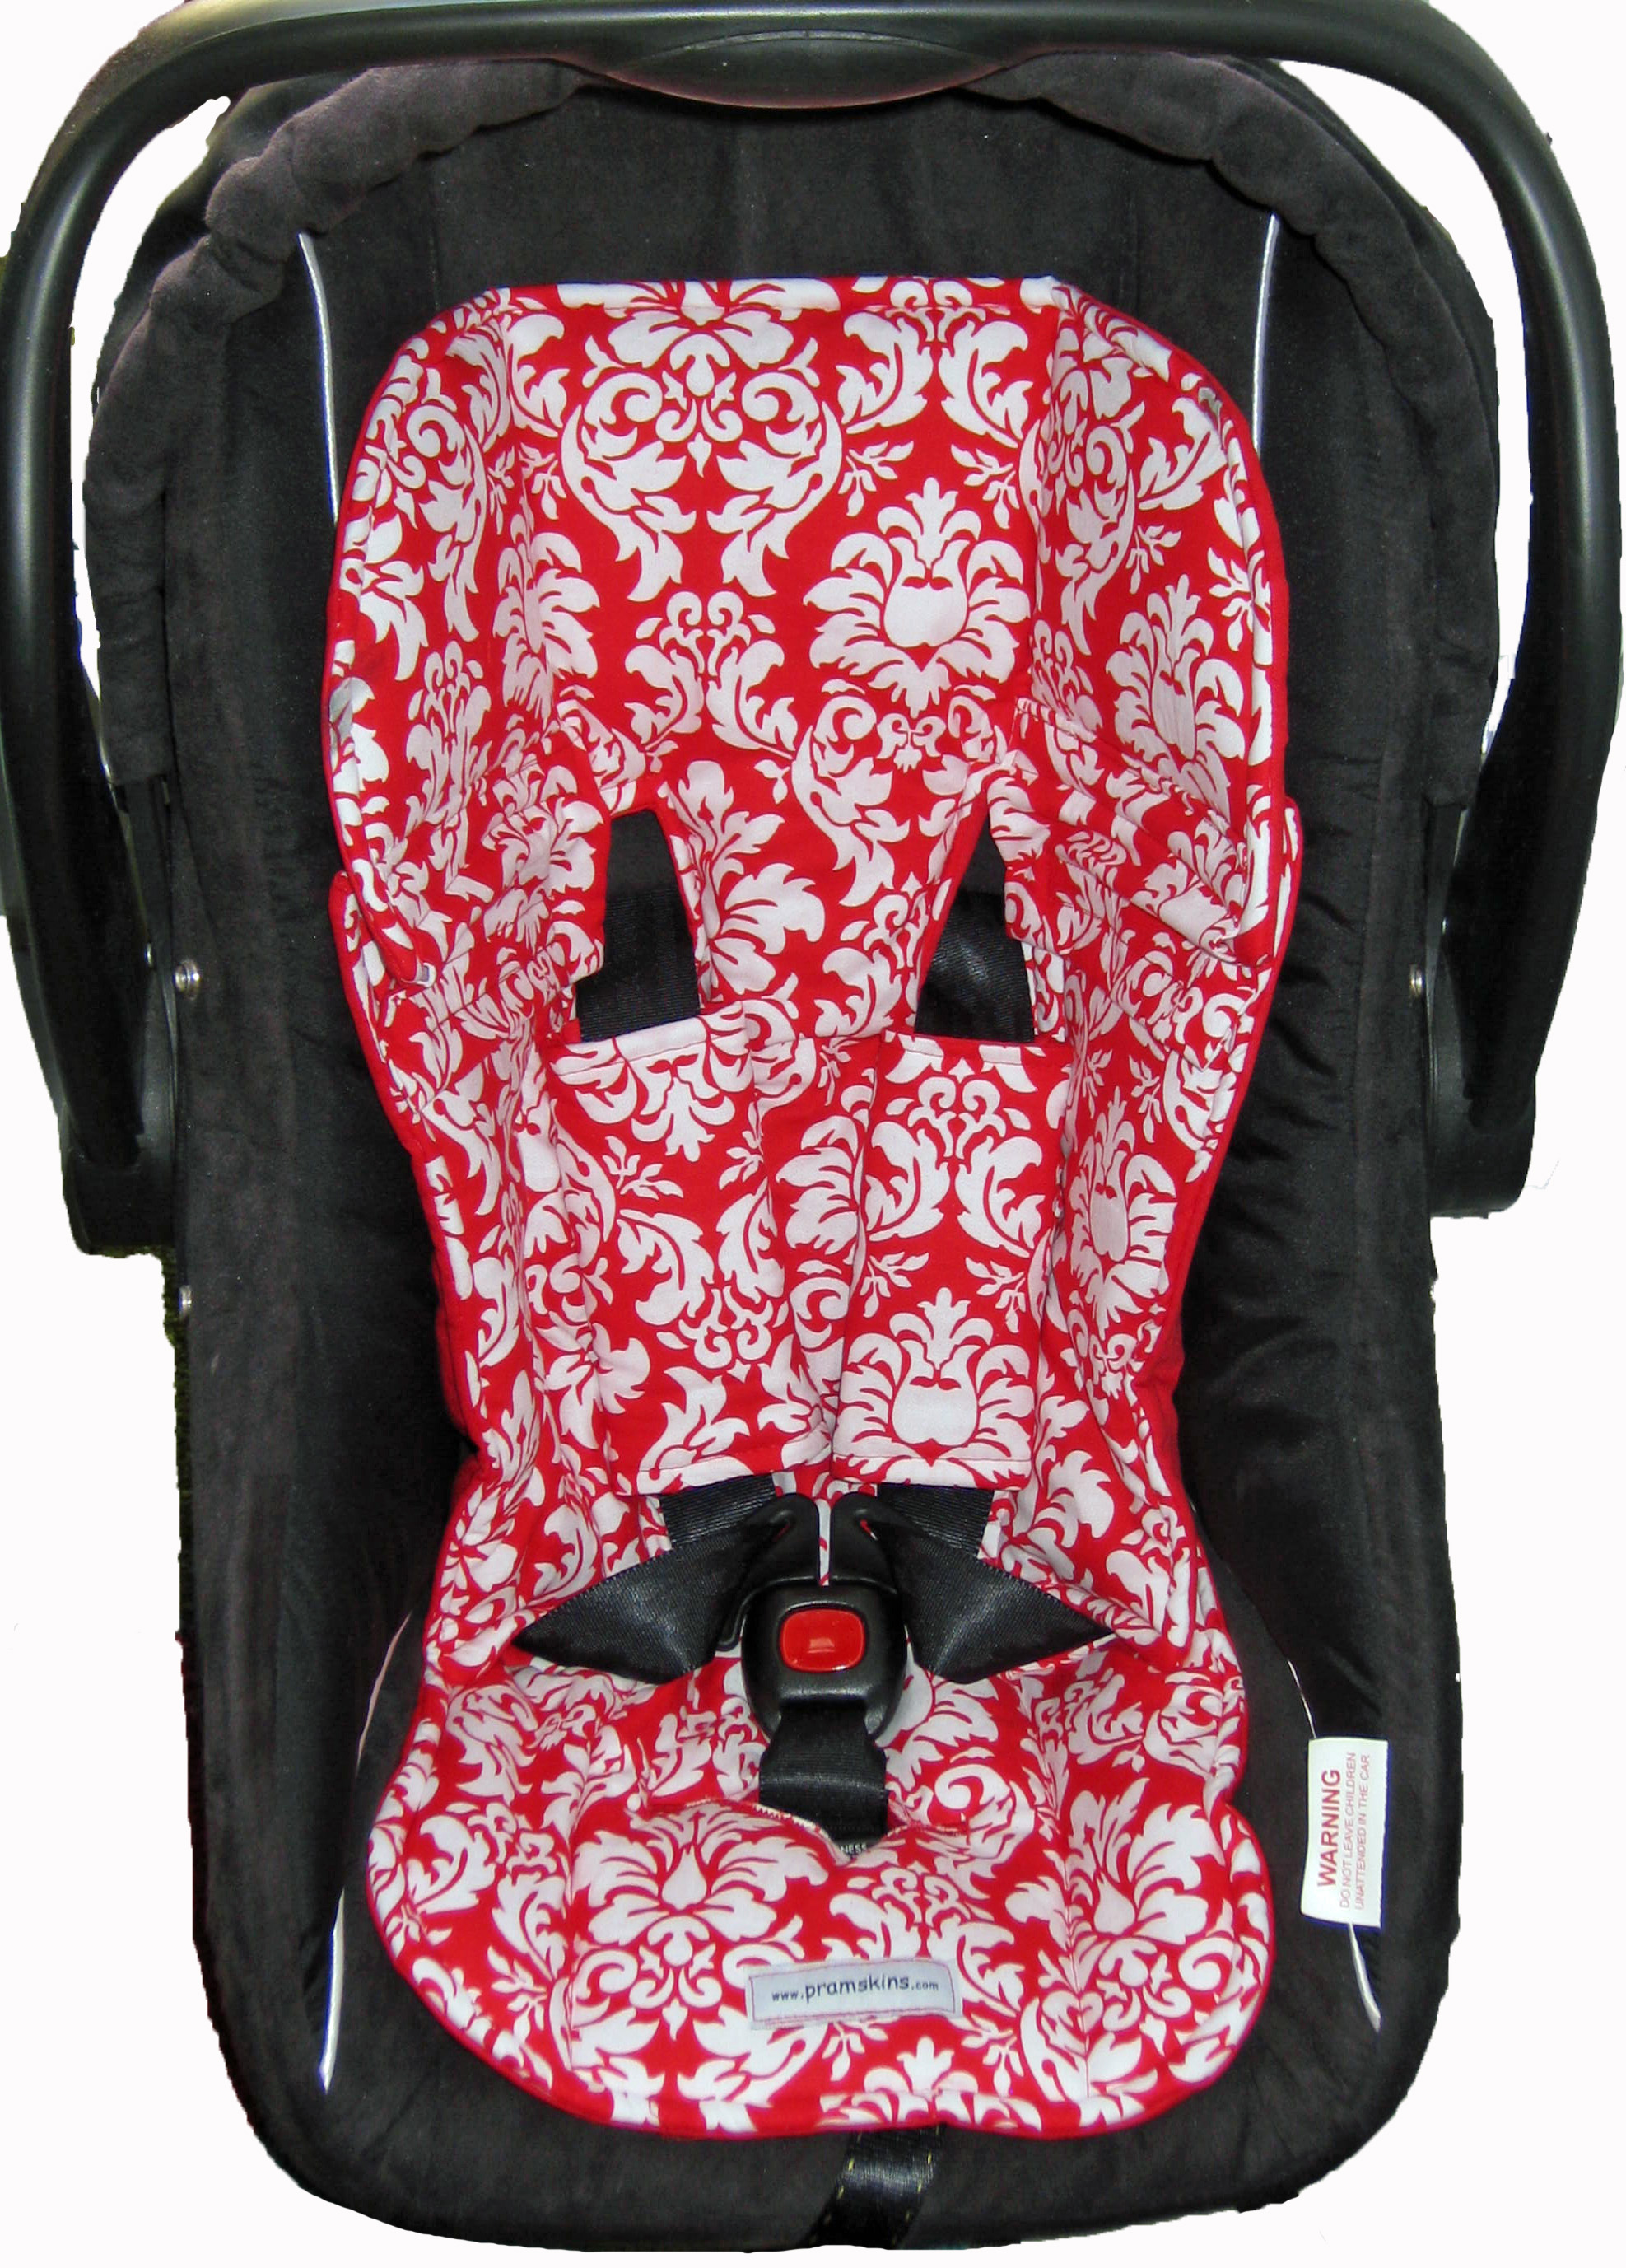 capsule-liner-damask-red-white.jpg